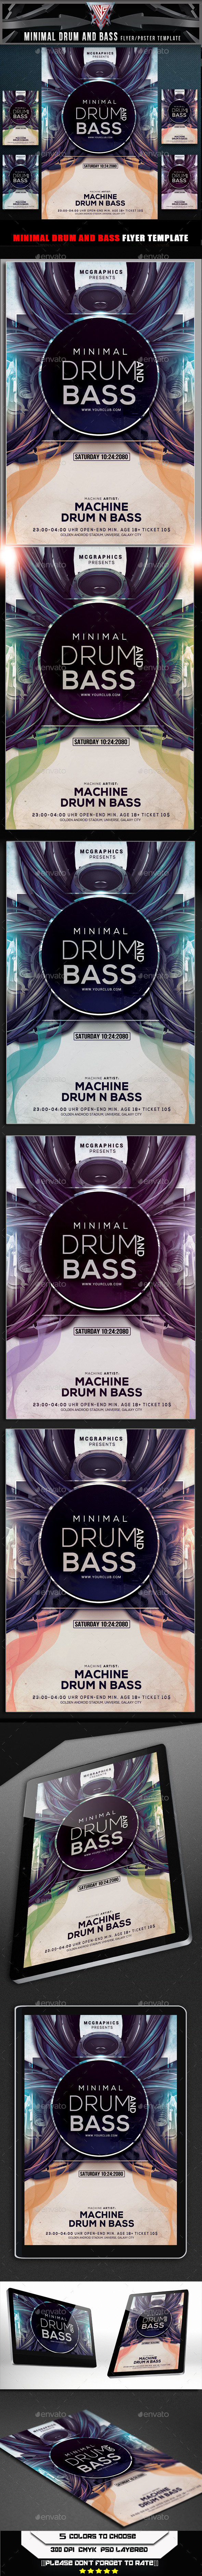 Minimal Drum and Bass Flyer Template